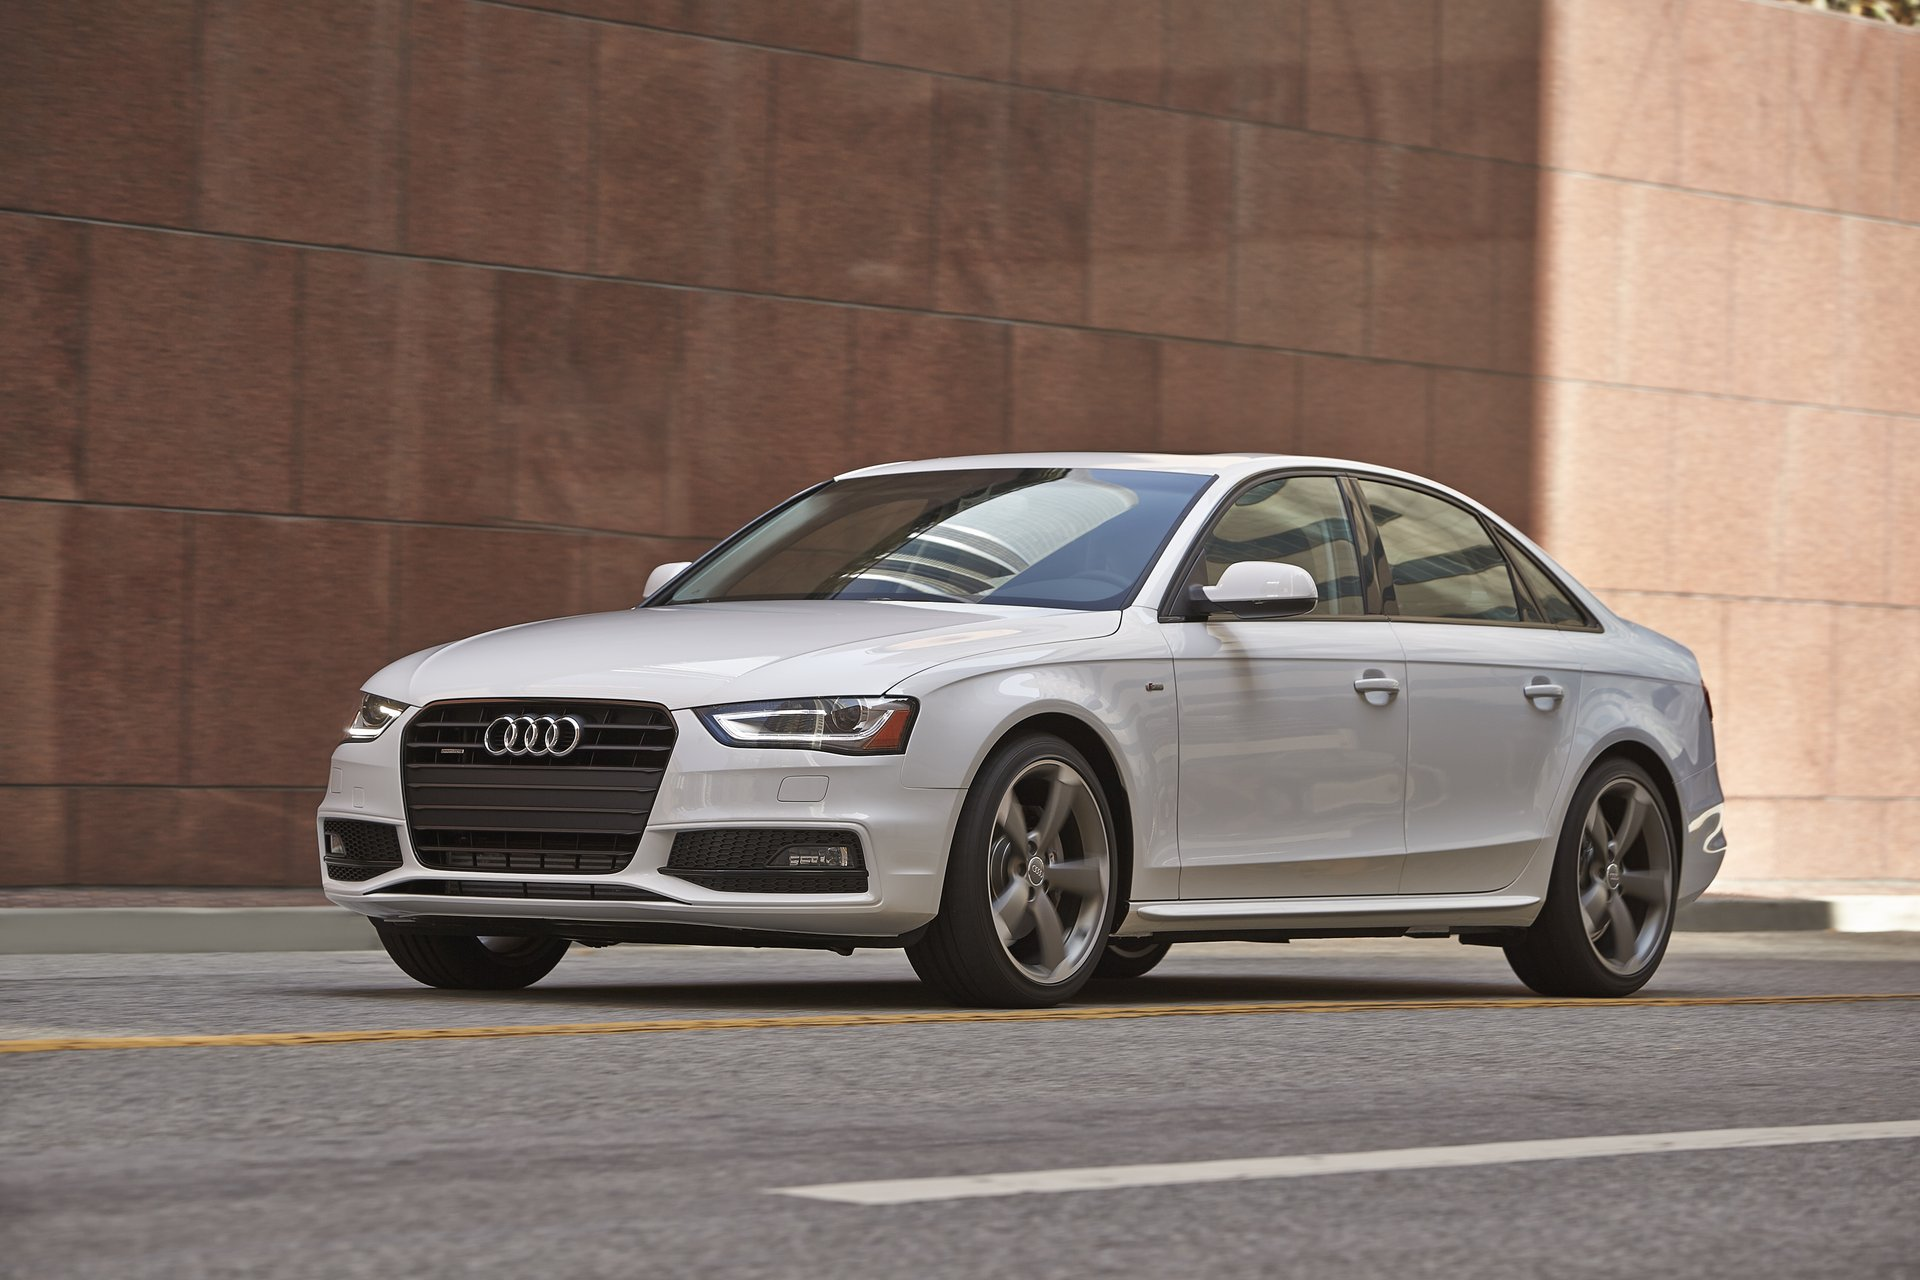 Land Rover Fort Worth >> 2015-audi-a4_100482627_h.jpg